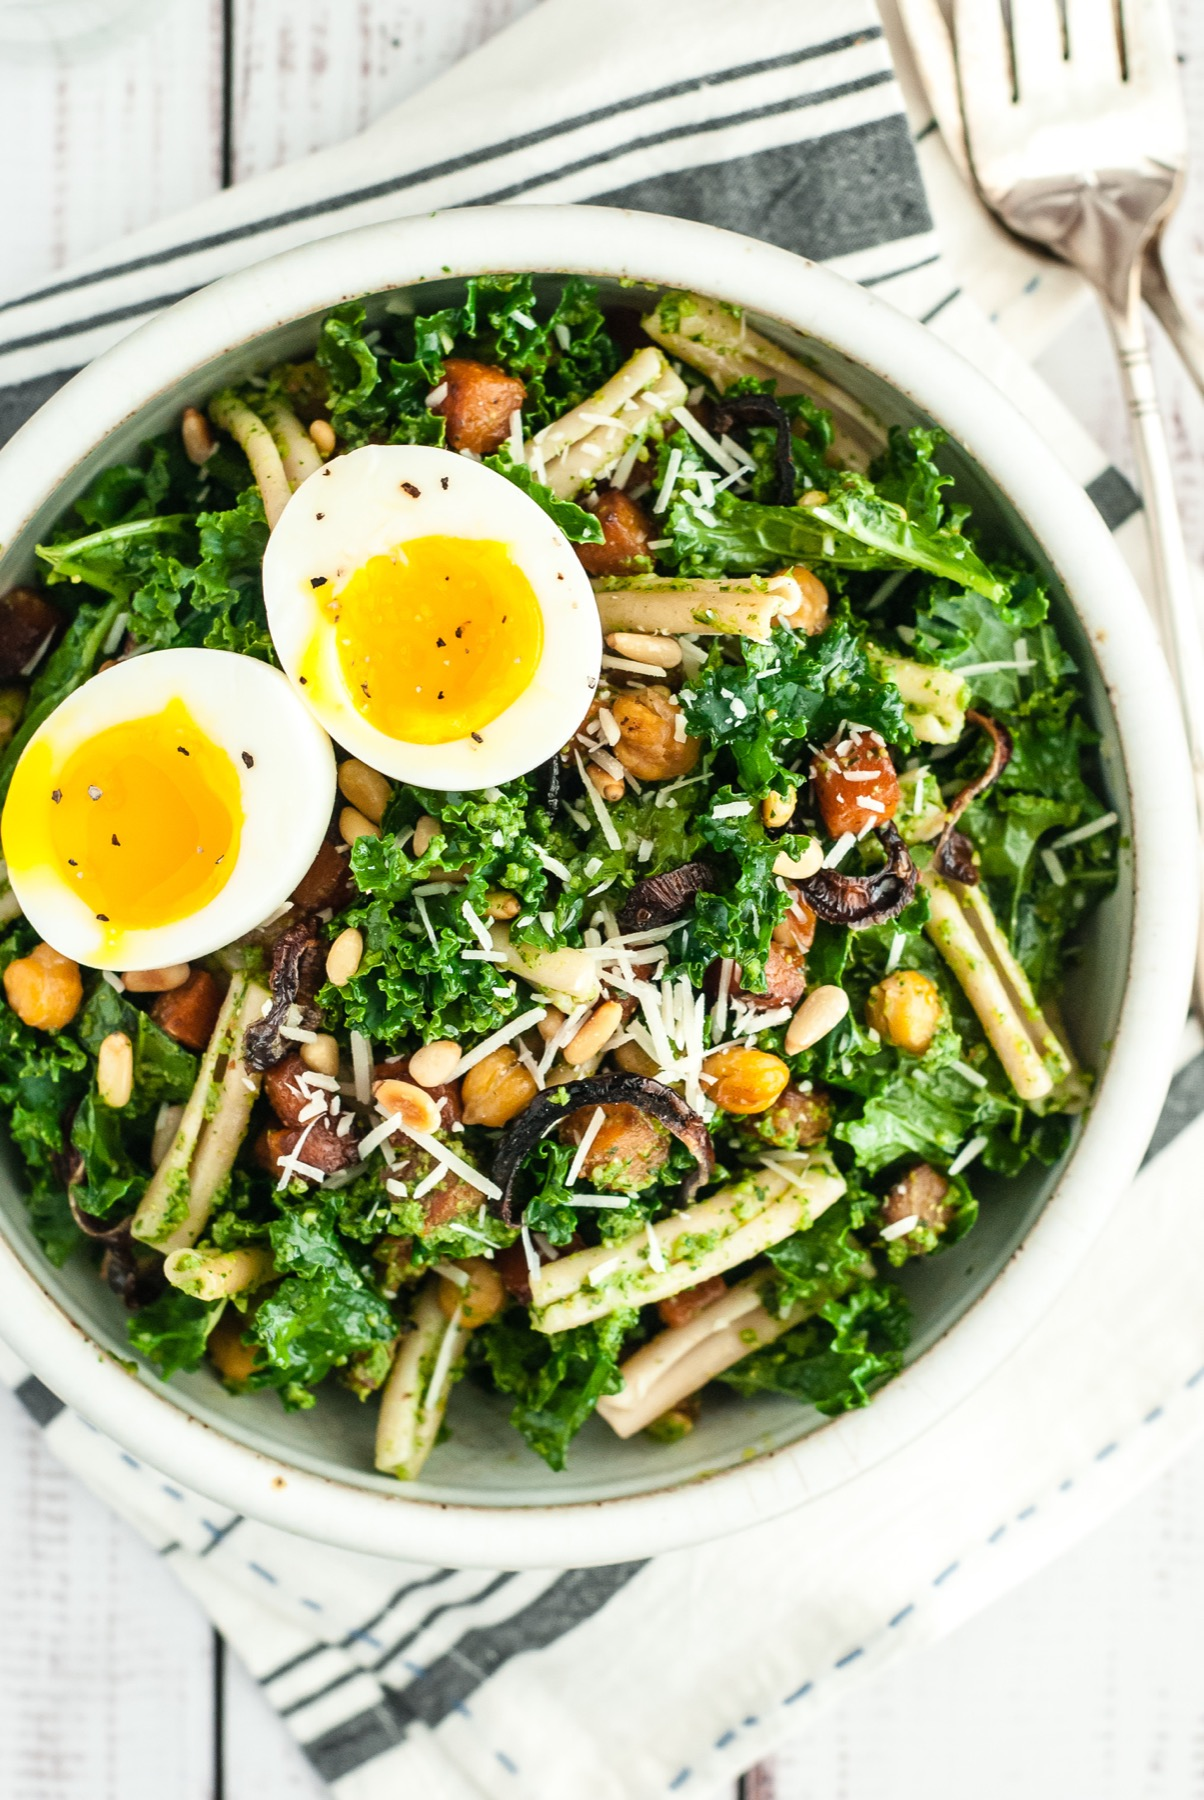 Kale Salad with Butternut Squash and Chickpeas